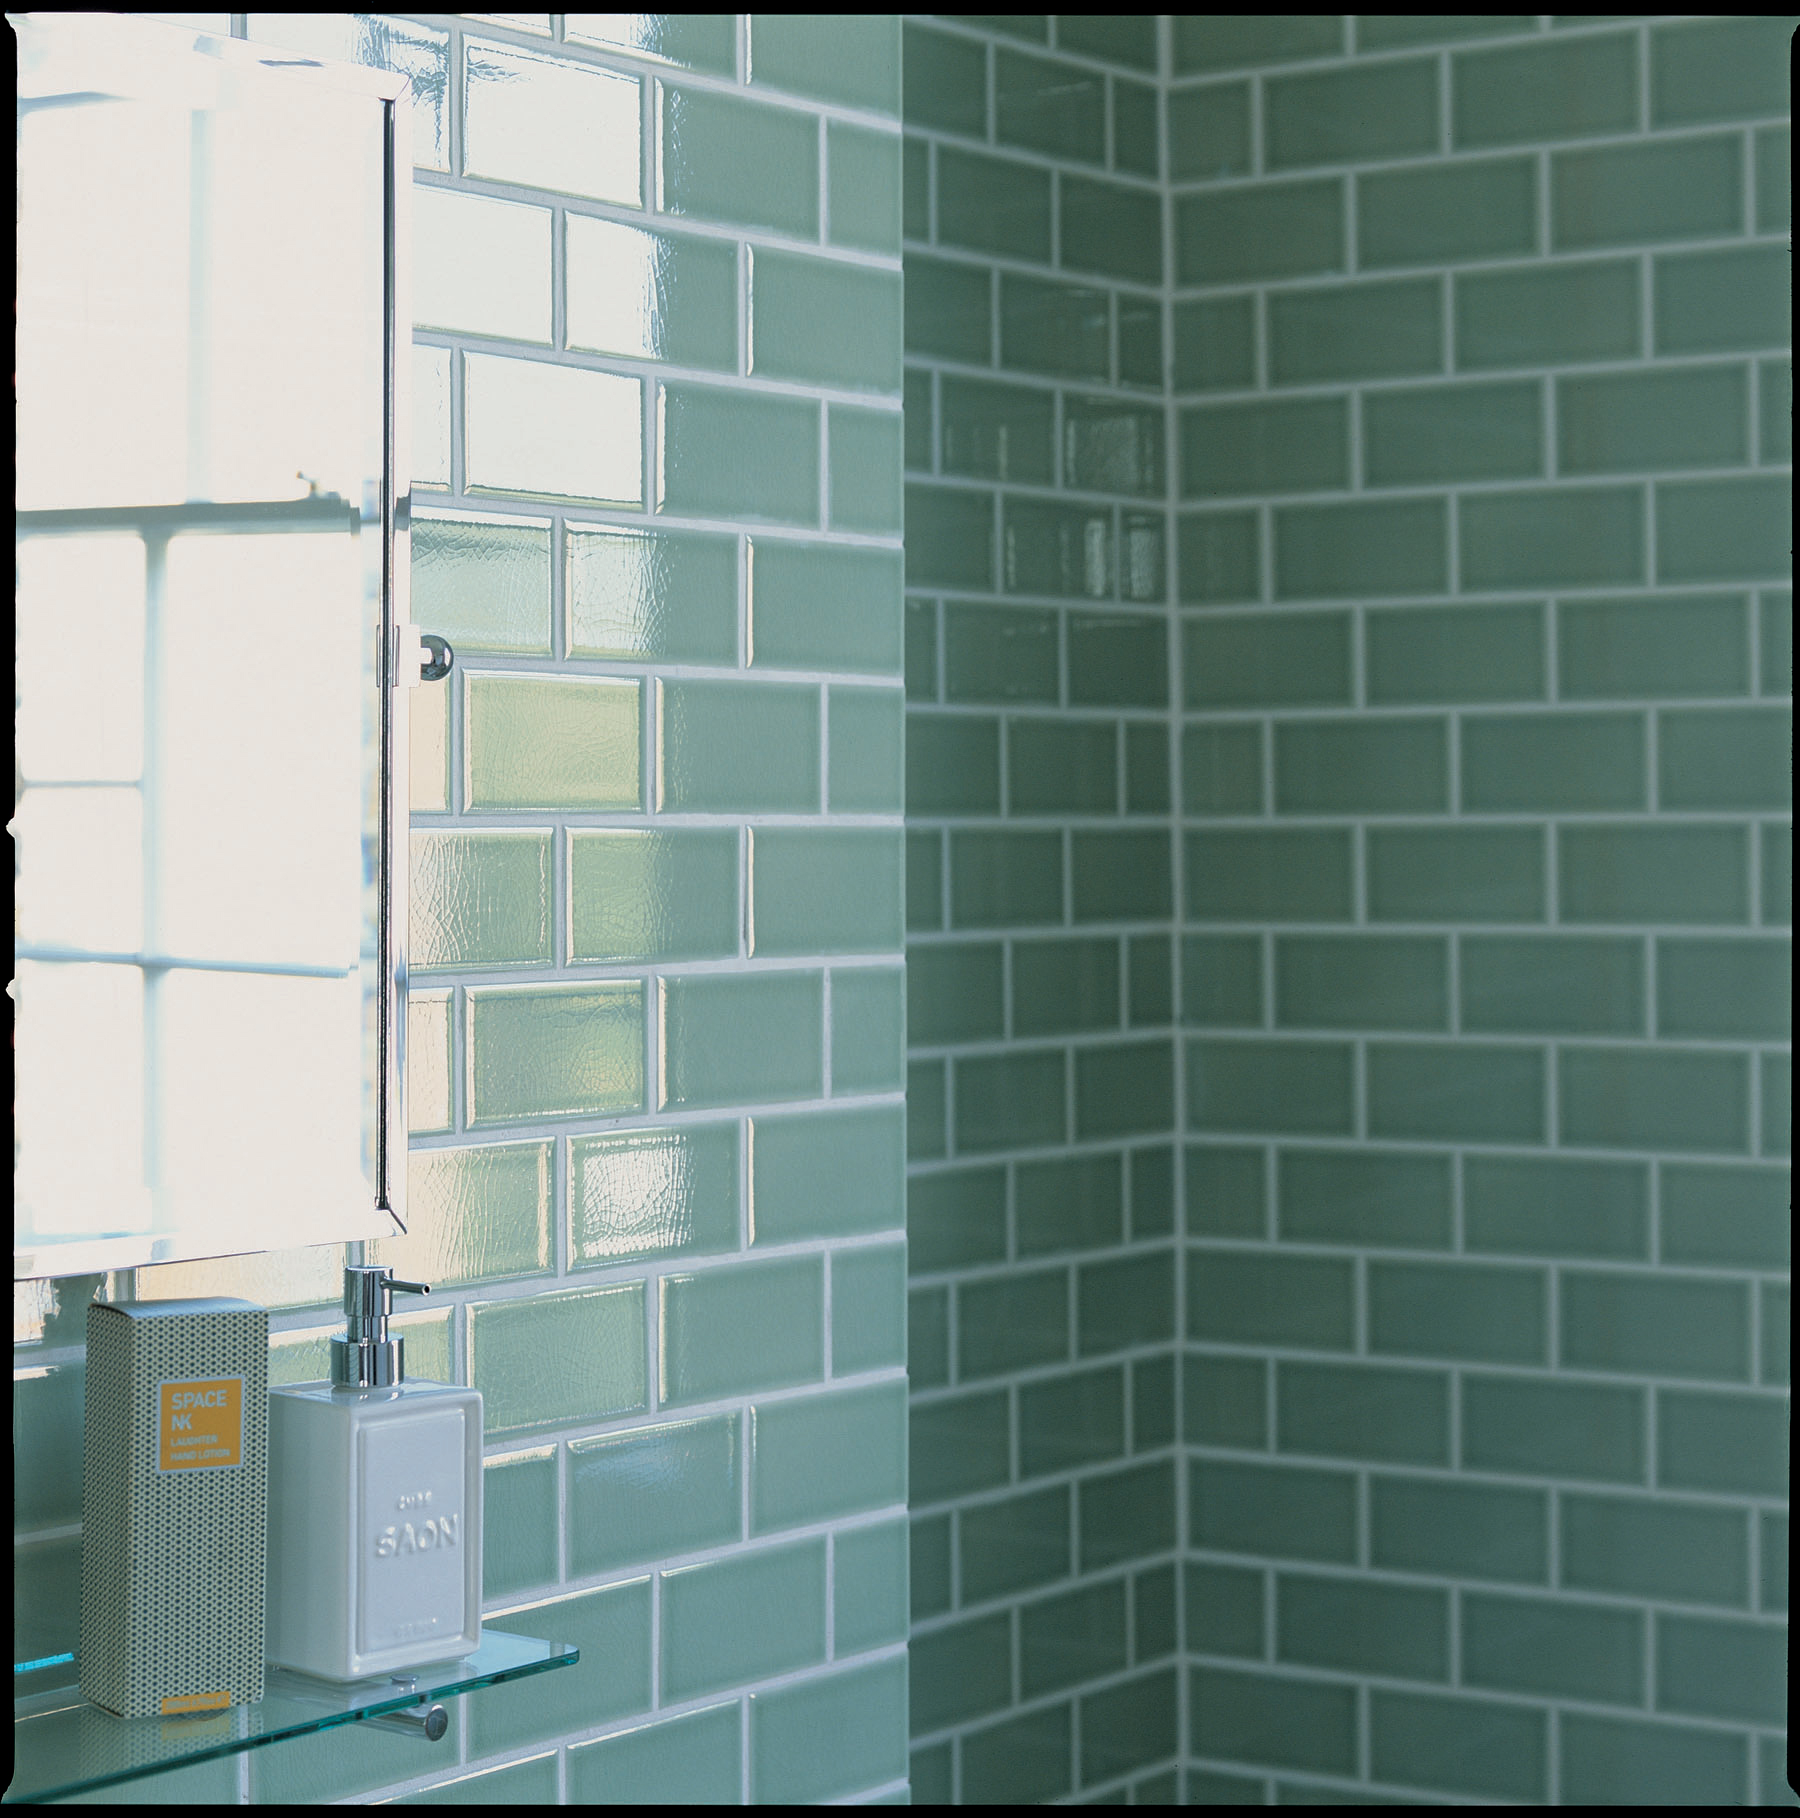 Wall Tile For Bathrooms: 30 Great Pictures And Ideas Of Old Fashioned Bathroom Tile